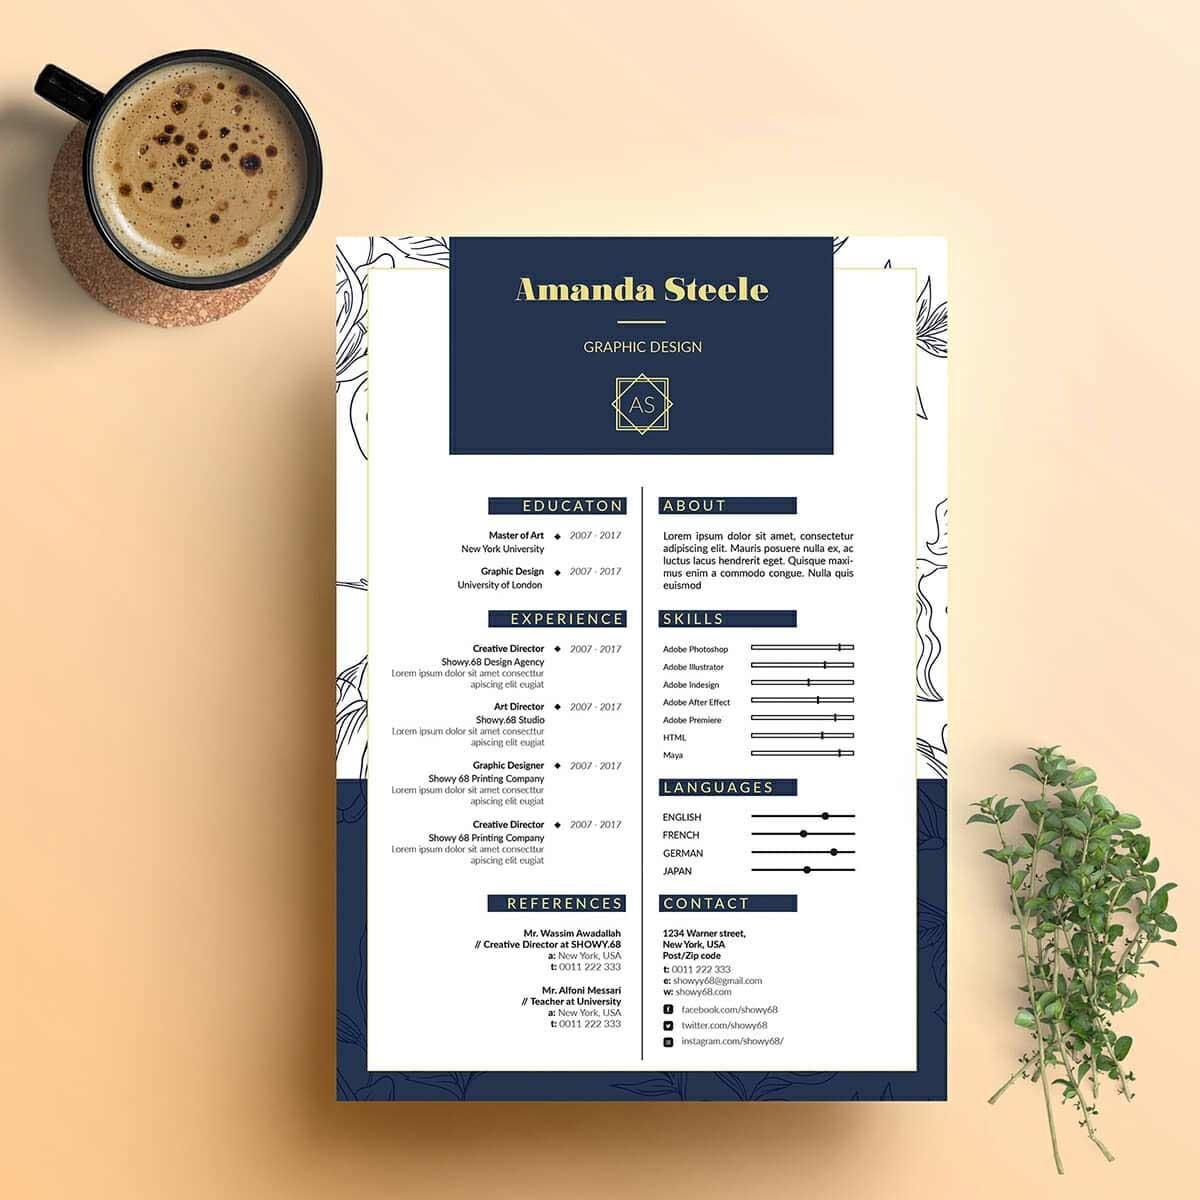 New Resume Designs | 15 Resume Design Ideas Inspirations Templates How To Tutorial